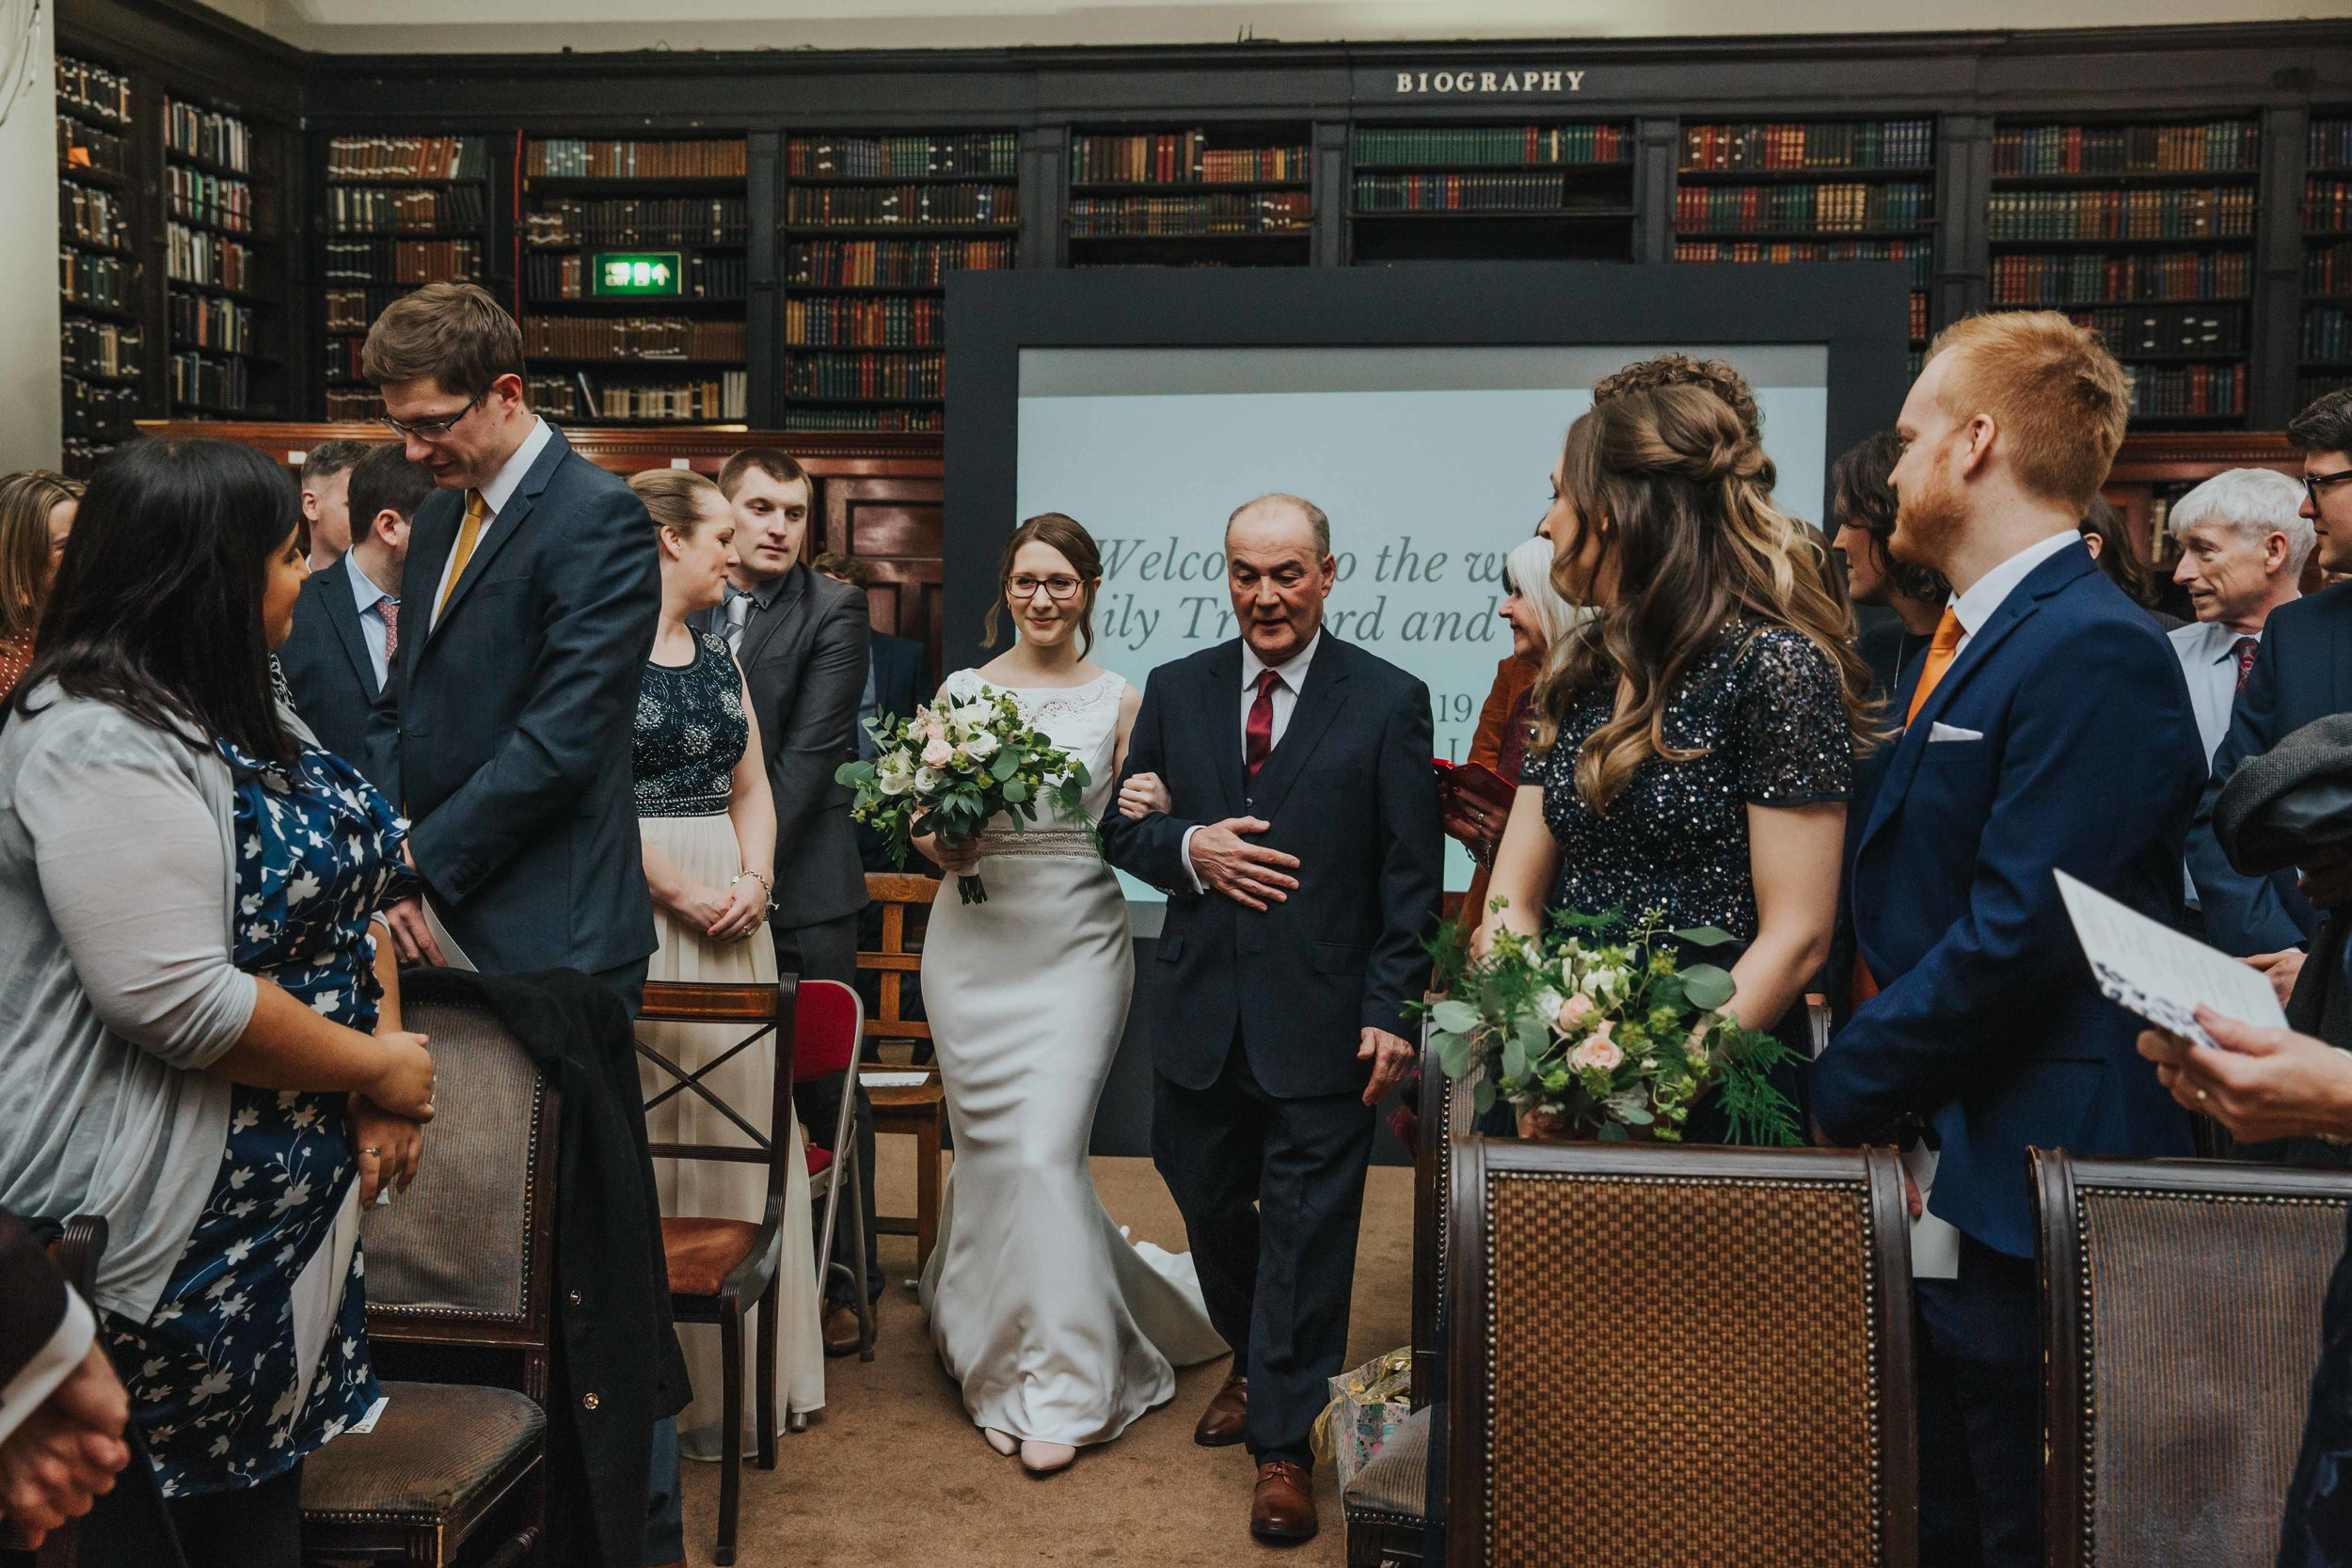 Bride walking down the aisle at The Portico Library